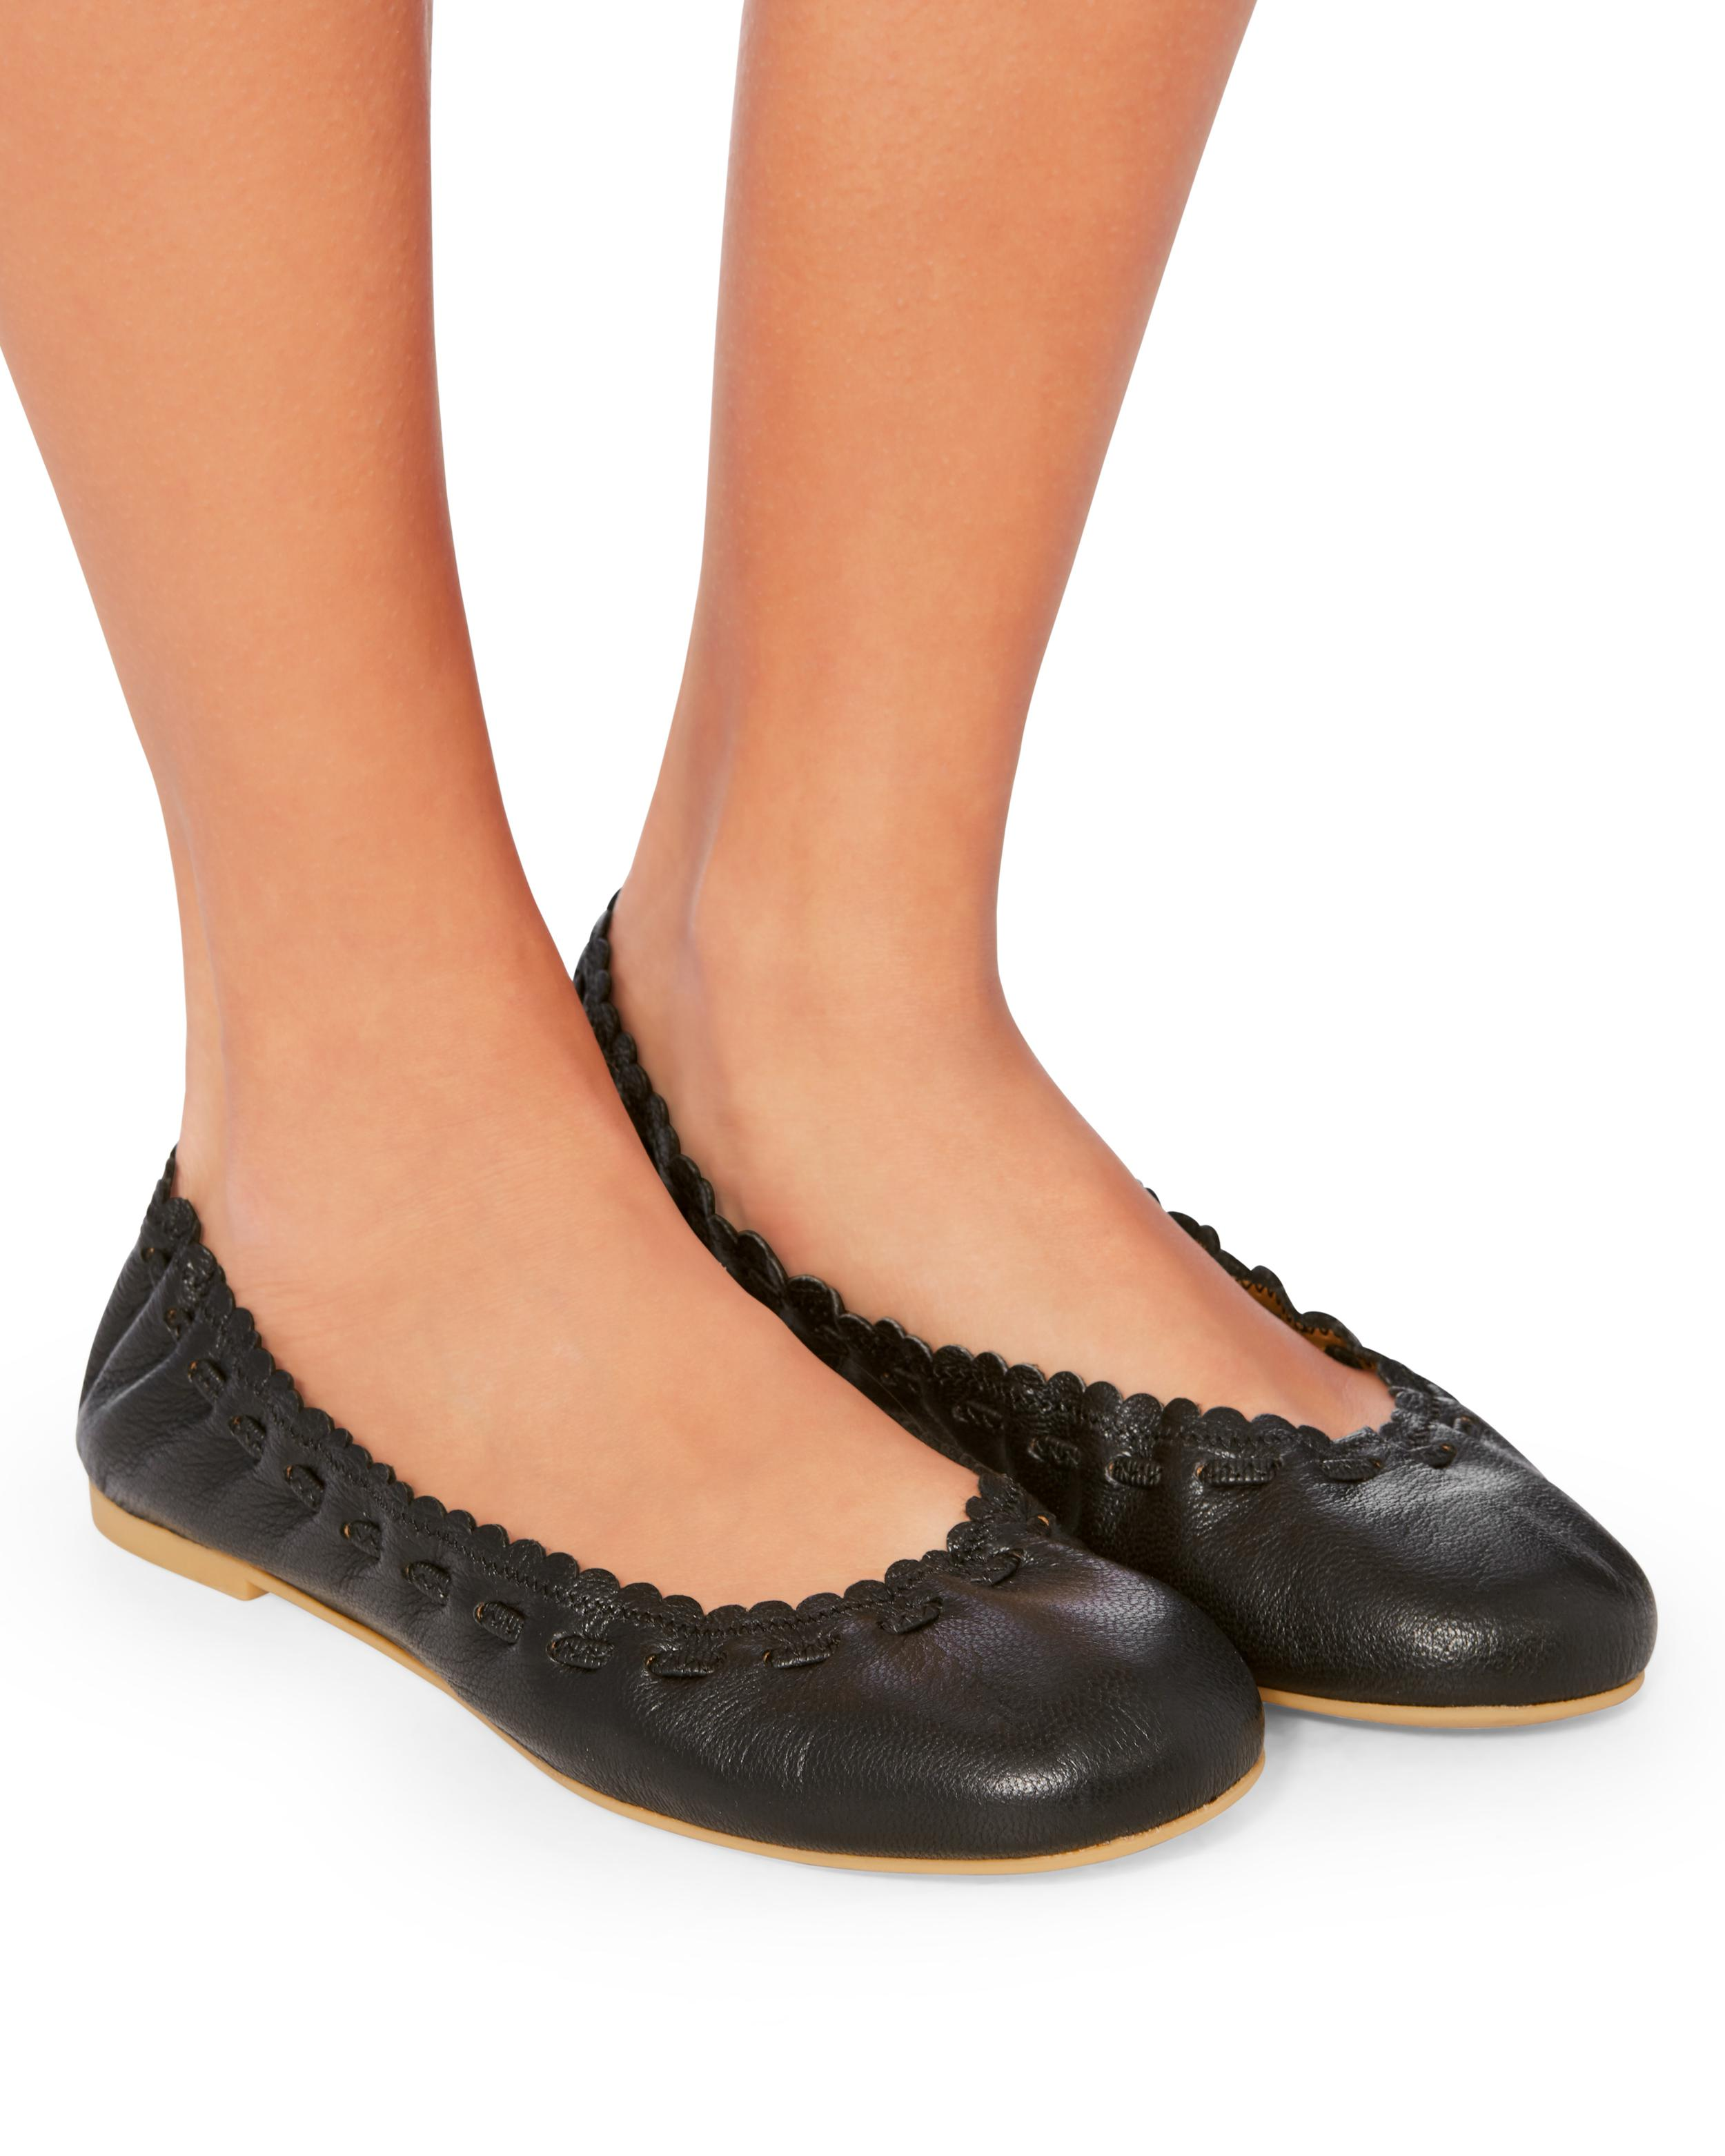 46eace560 See By Chloé Jane Leather Ballet Flats in Black - Lyst